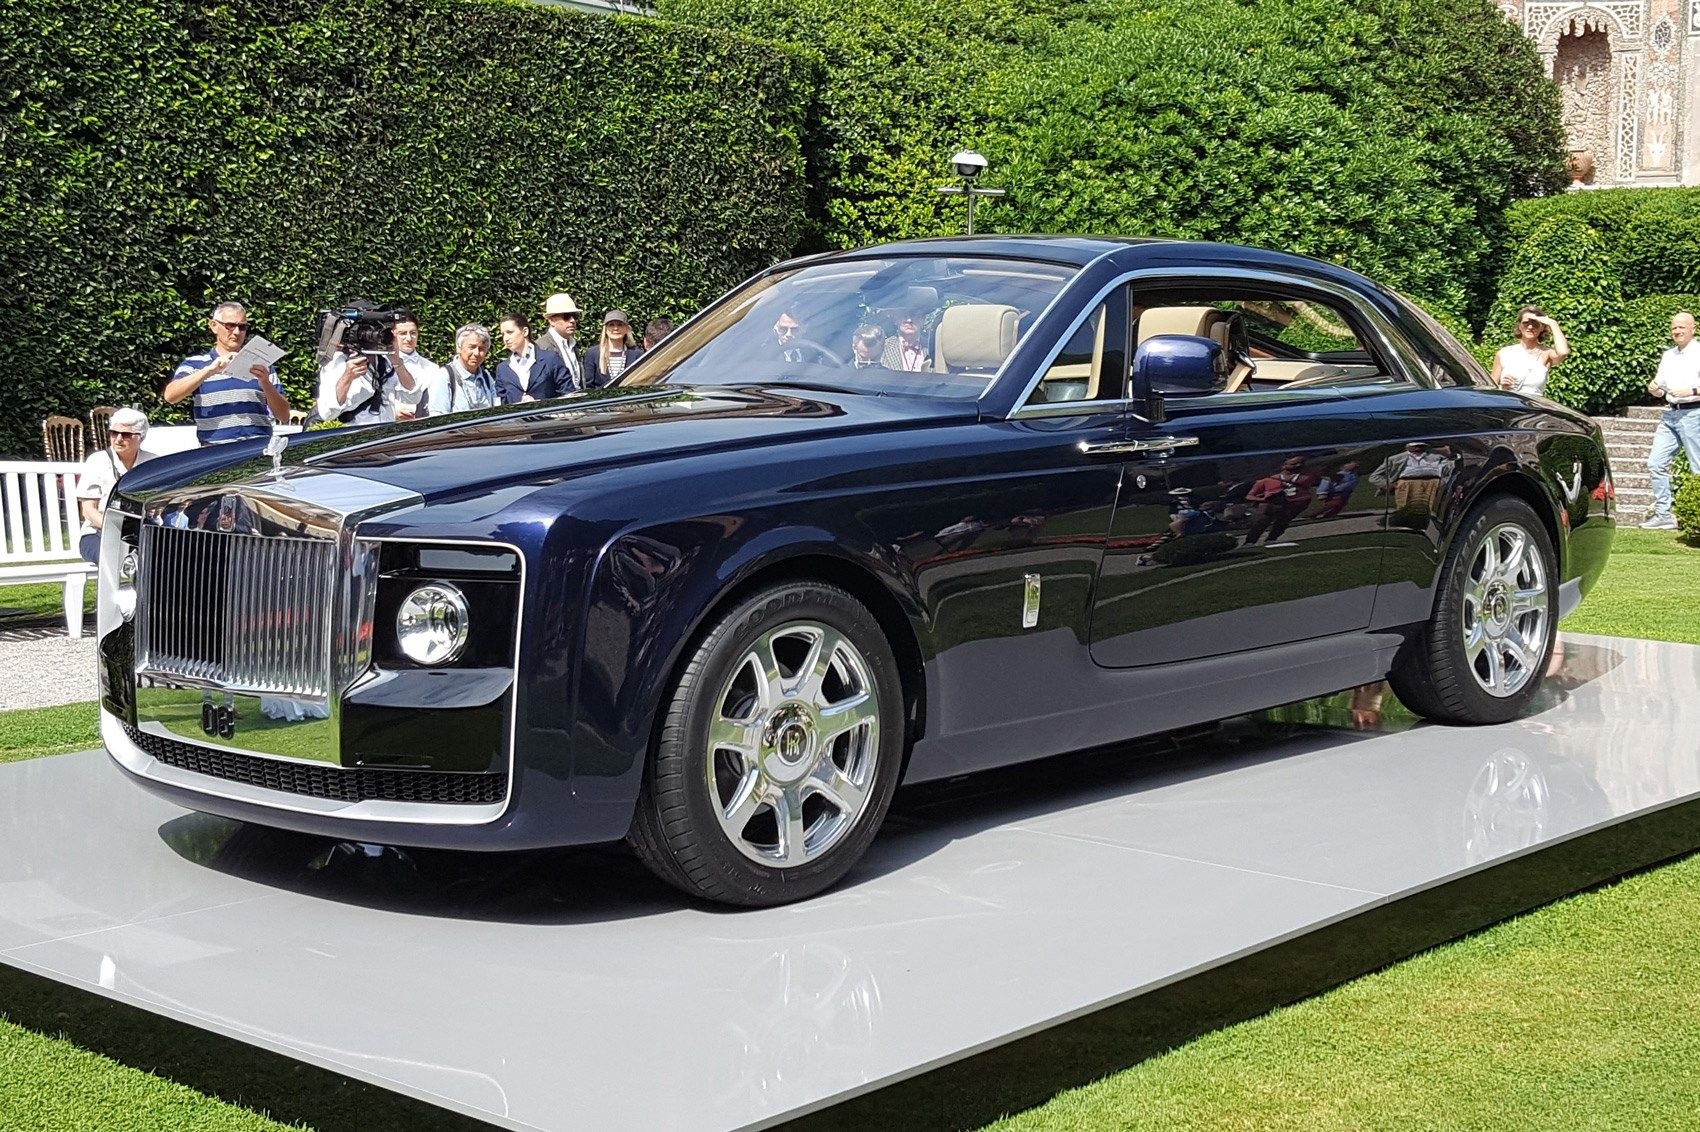 Top 12 Ultimate Expensive Cars In The World Expensive Cars Rolls Royce Most Expensive Car